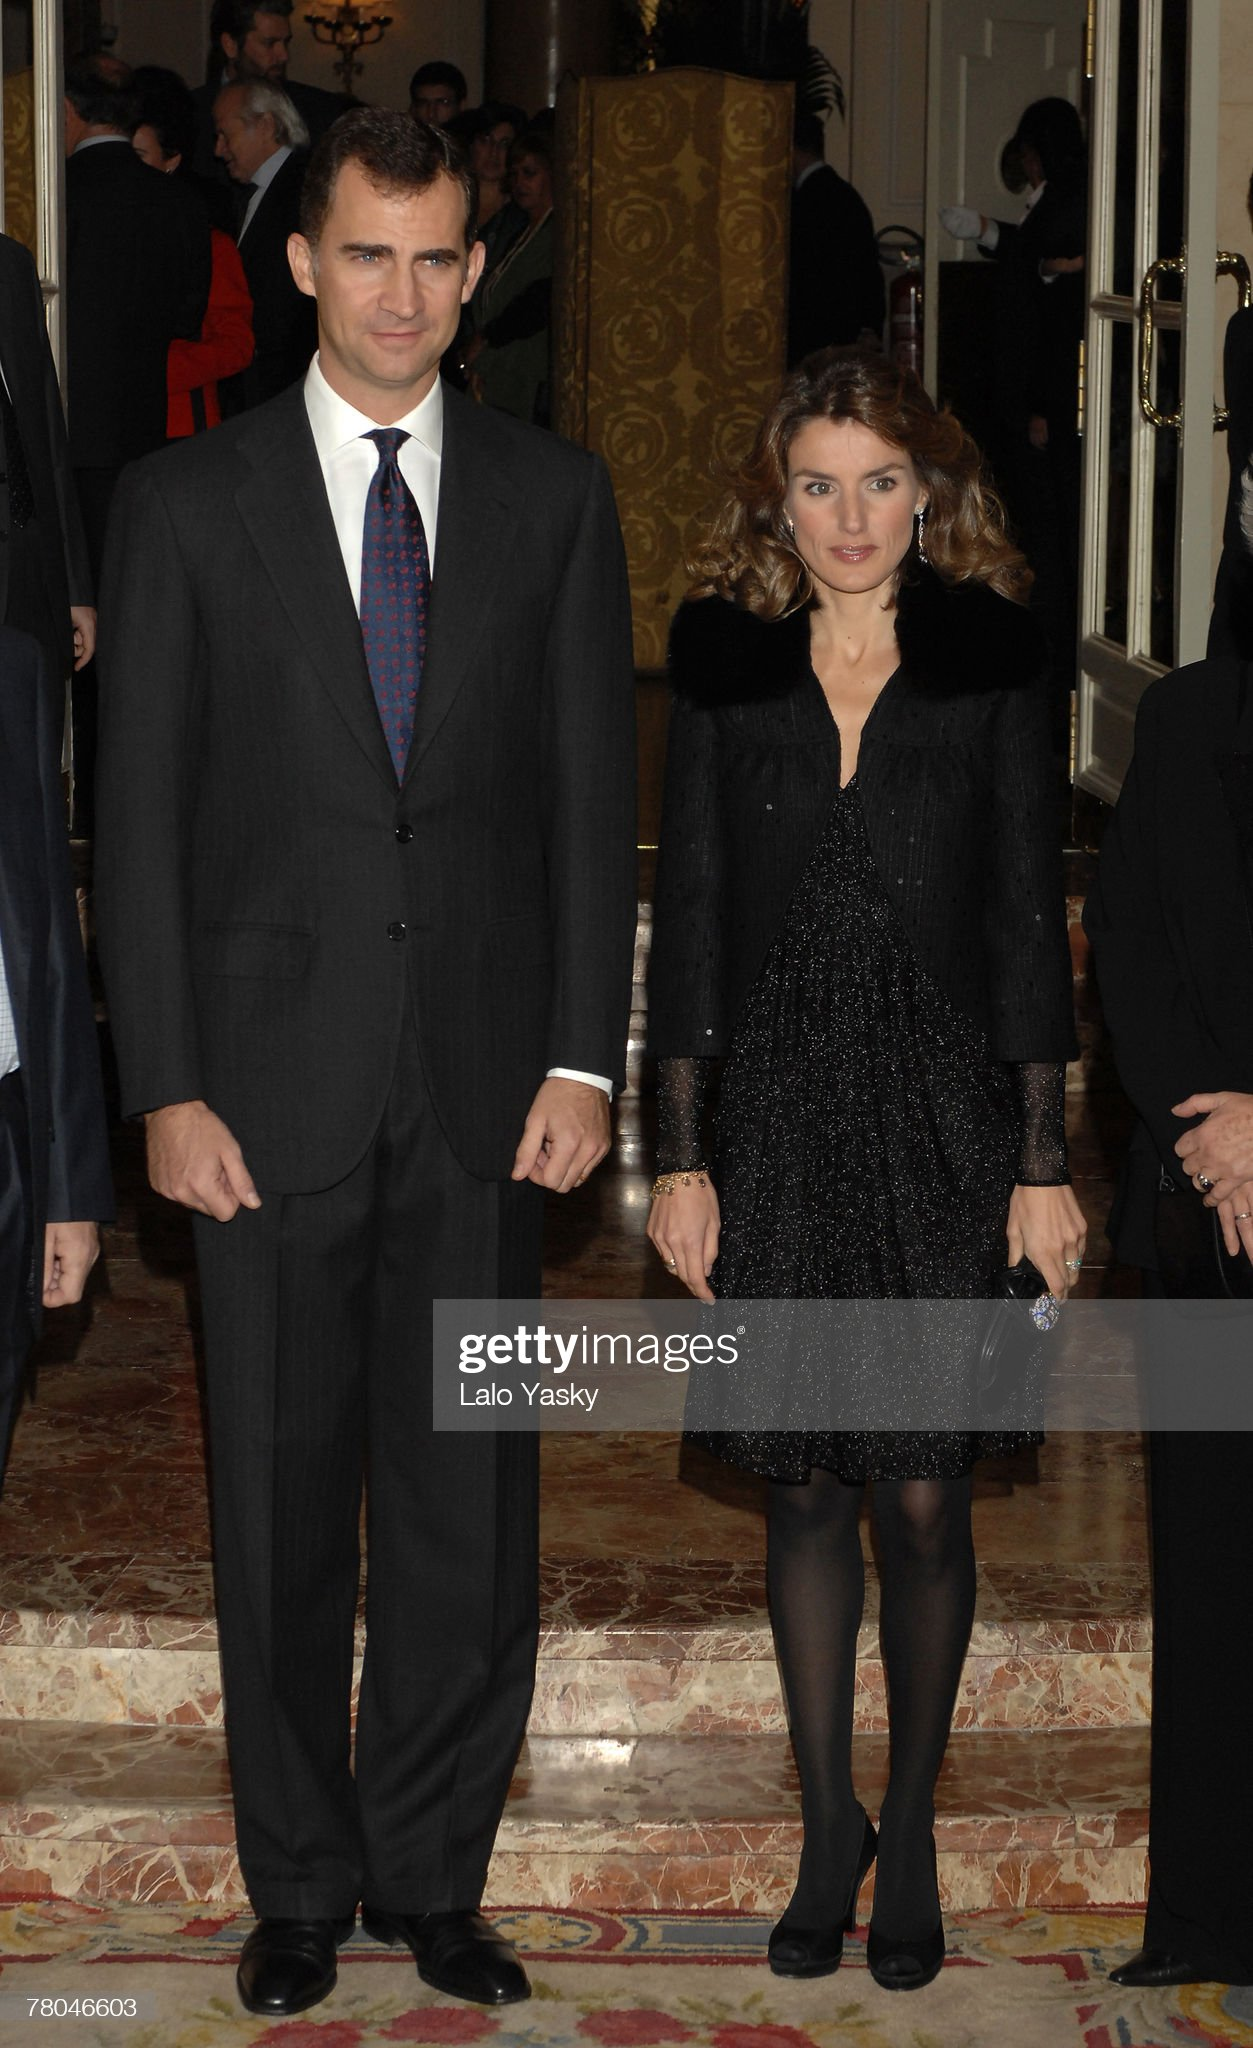 Prince Felipe and Princess Letizia Attend Journalism Award Dinner : News Photo